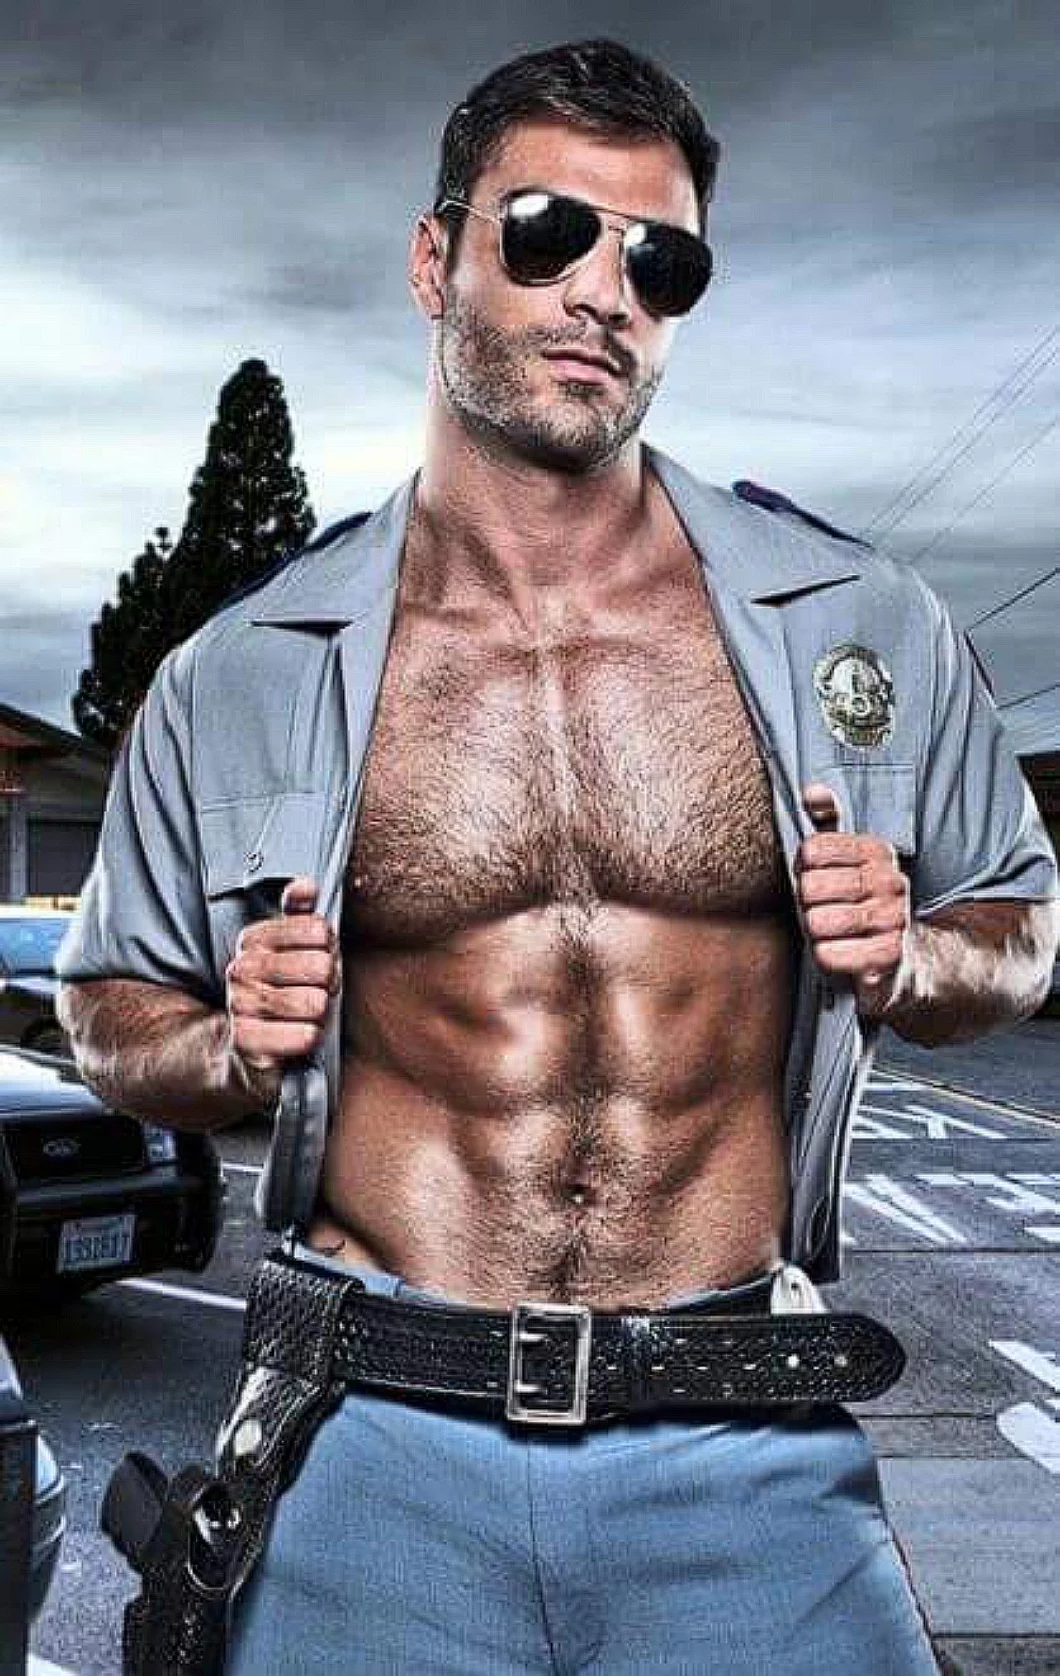 Gay man police hunks we made him determined